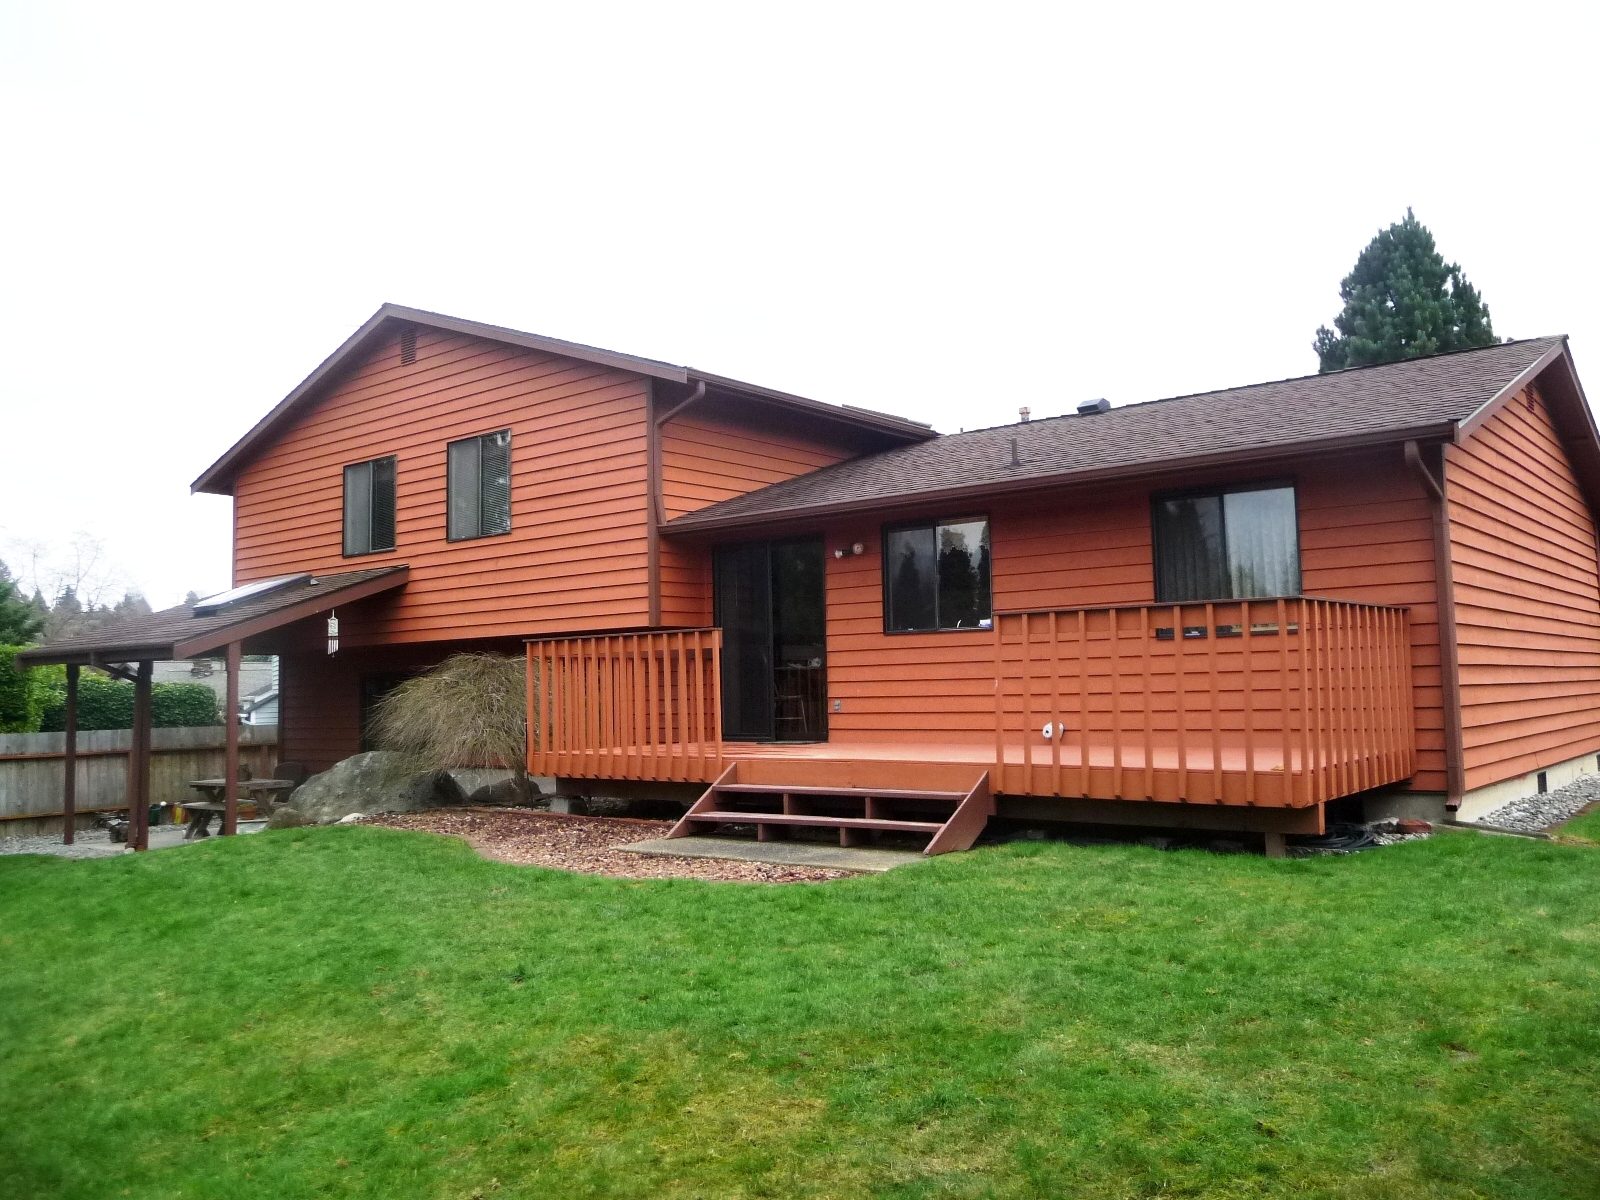 Des moines wa tri level home on culdesac for sale 4 bedrooms for Tri level homes